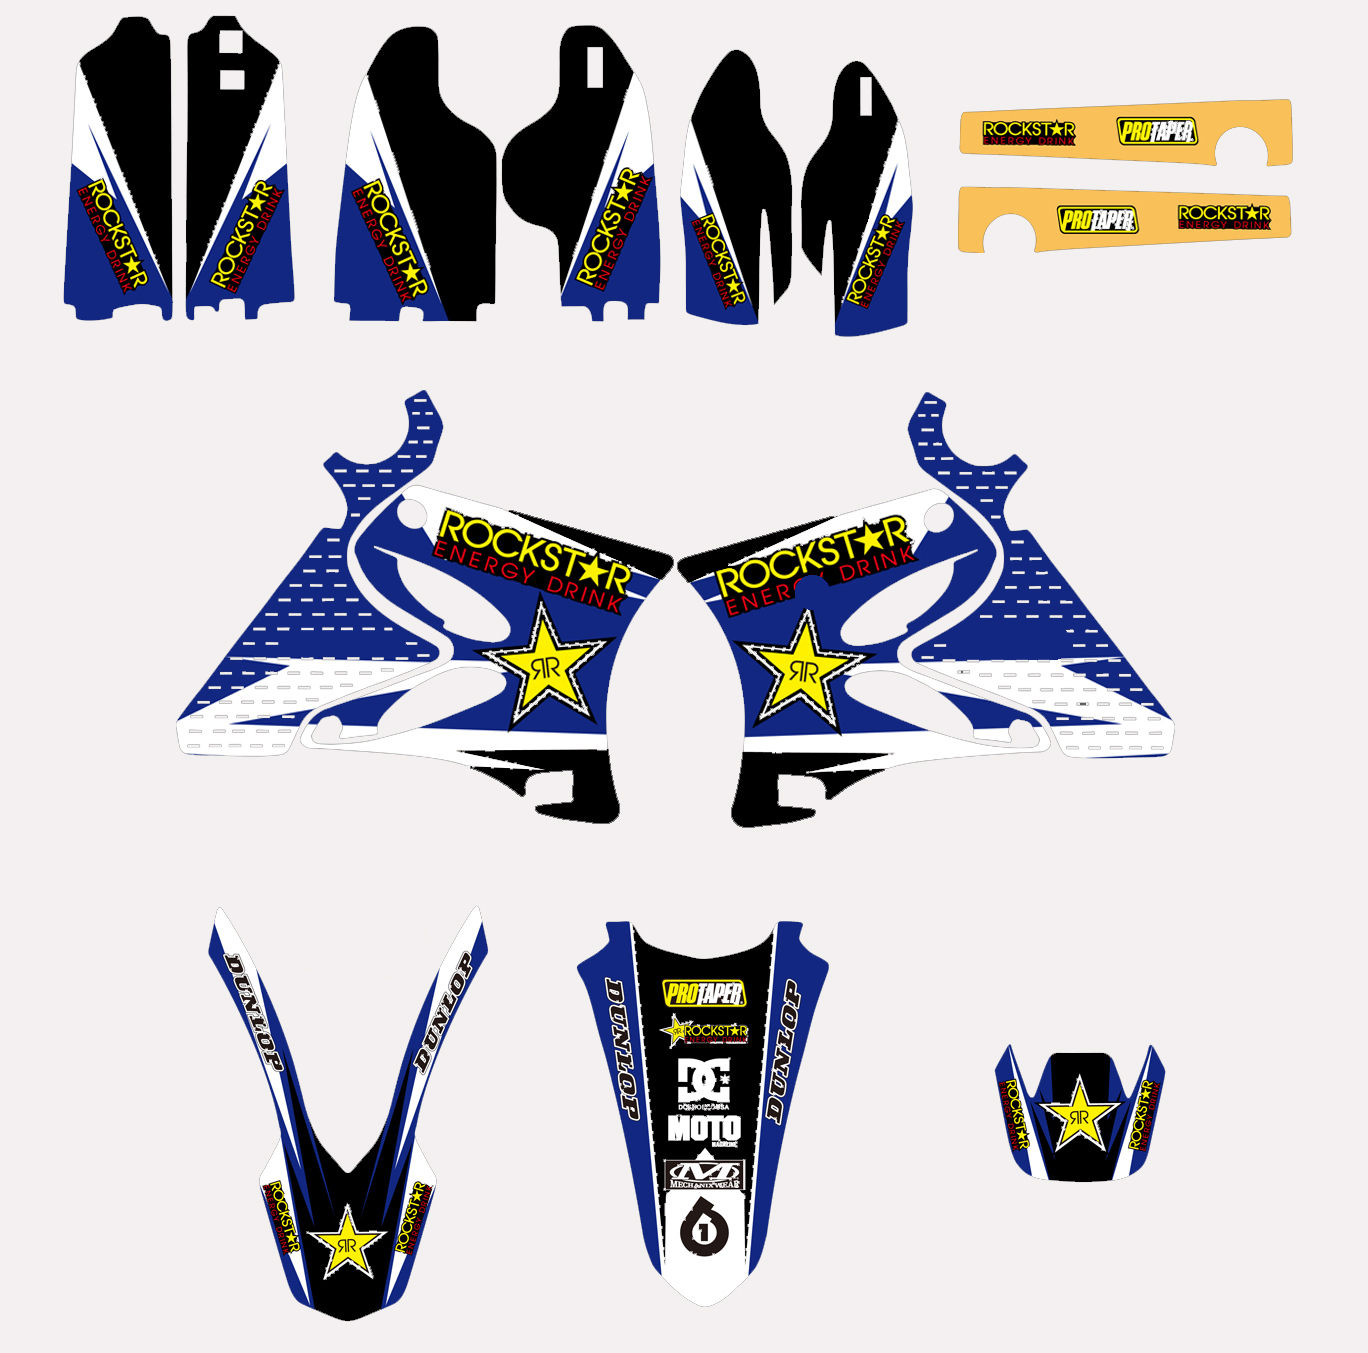 US $40 47 12% OFF|Motorcycle RockStar TEAM GRAPHICS DECALS STICKERS For  Yamaha YZ125 YZ250 YZ 125 250 2002 03 04 05 06 07 08 09 10 11 12 2013  2014-in